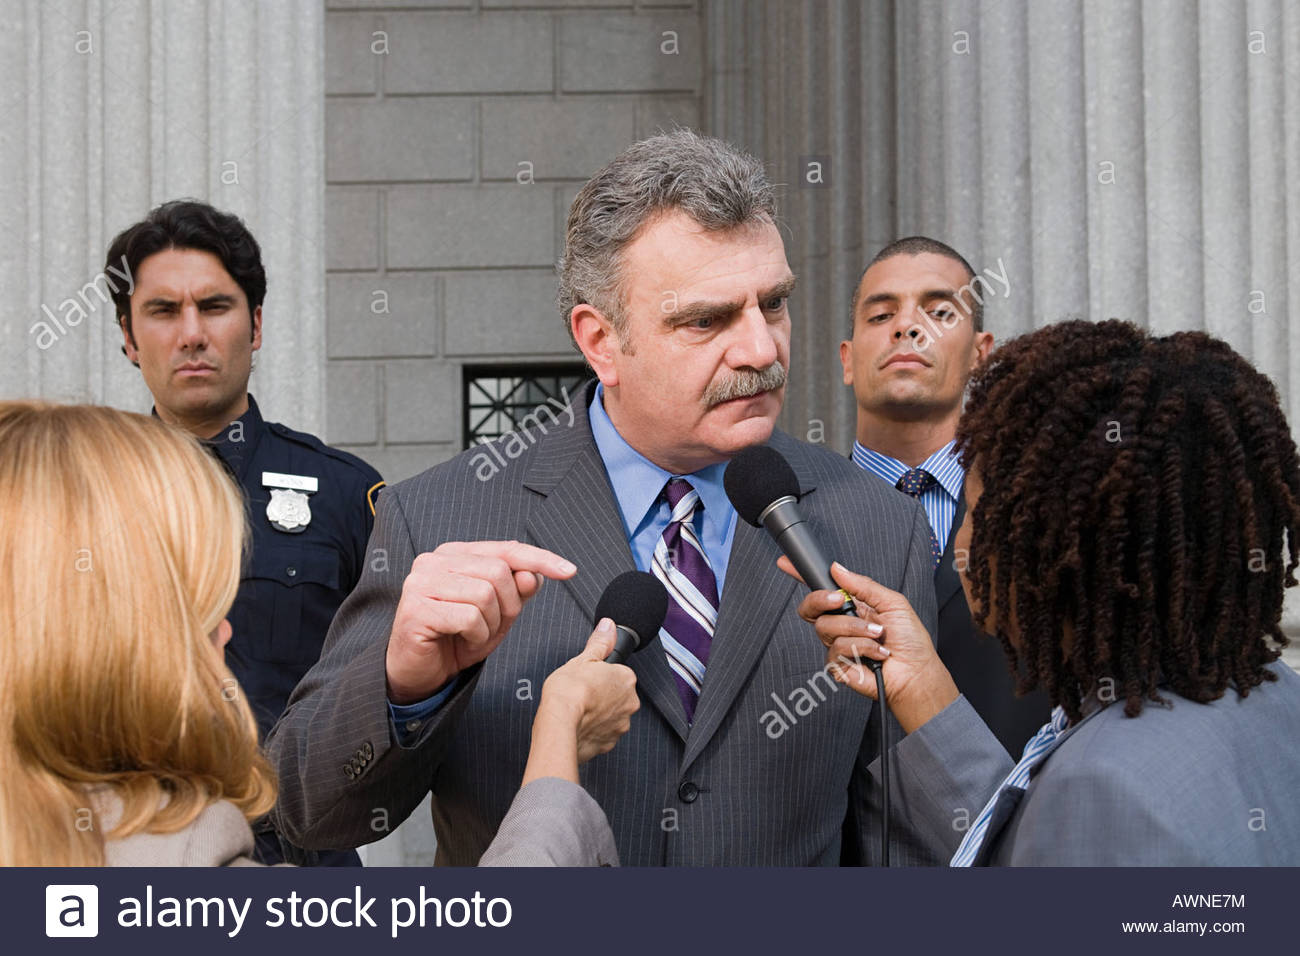 A man talking to reporters outside a courthouse - Stock Image